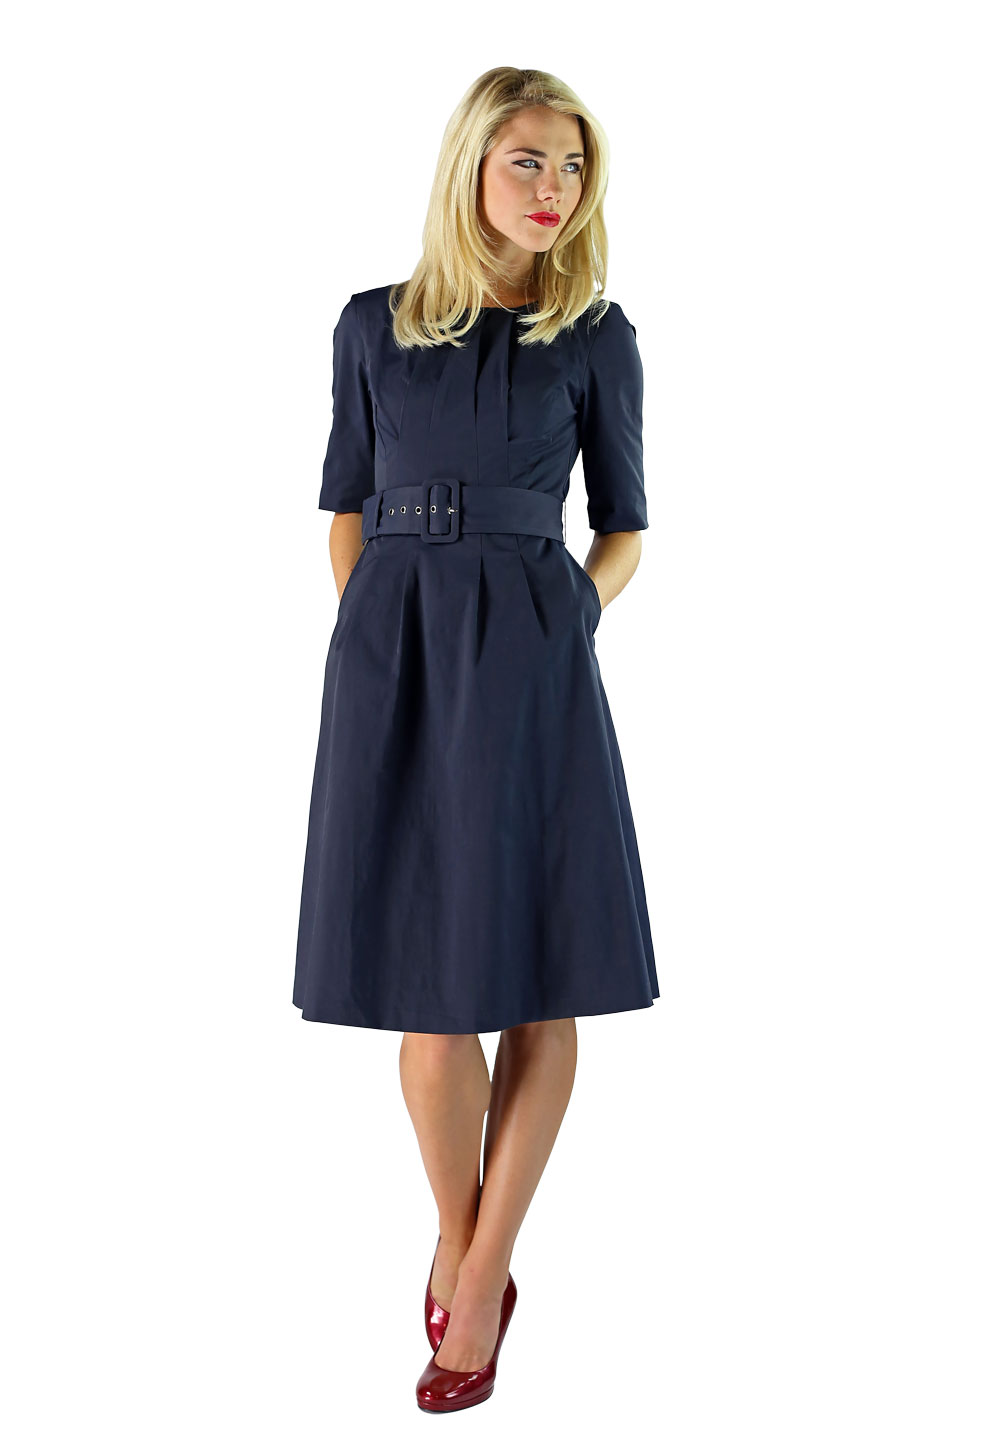 modest dress in navy